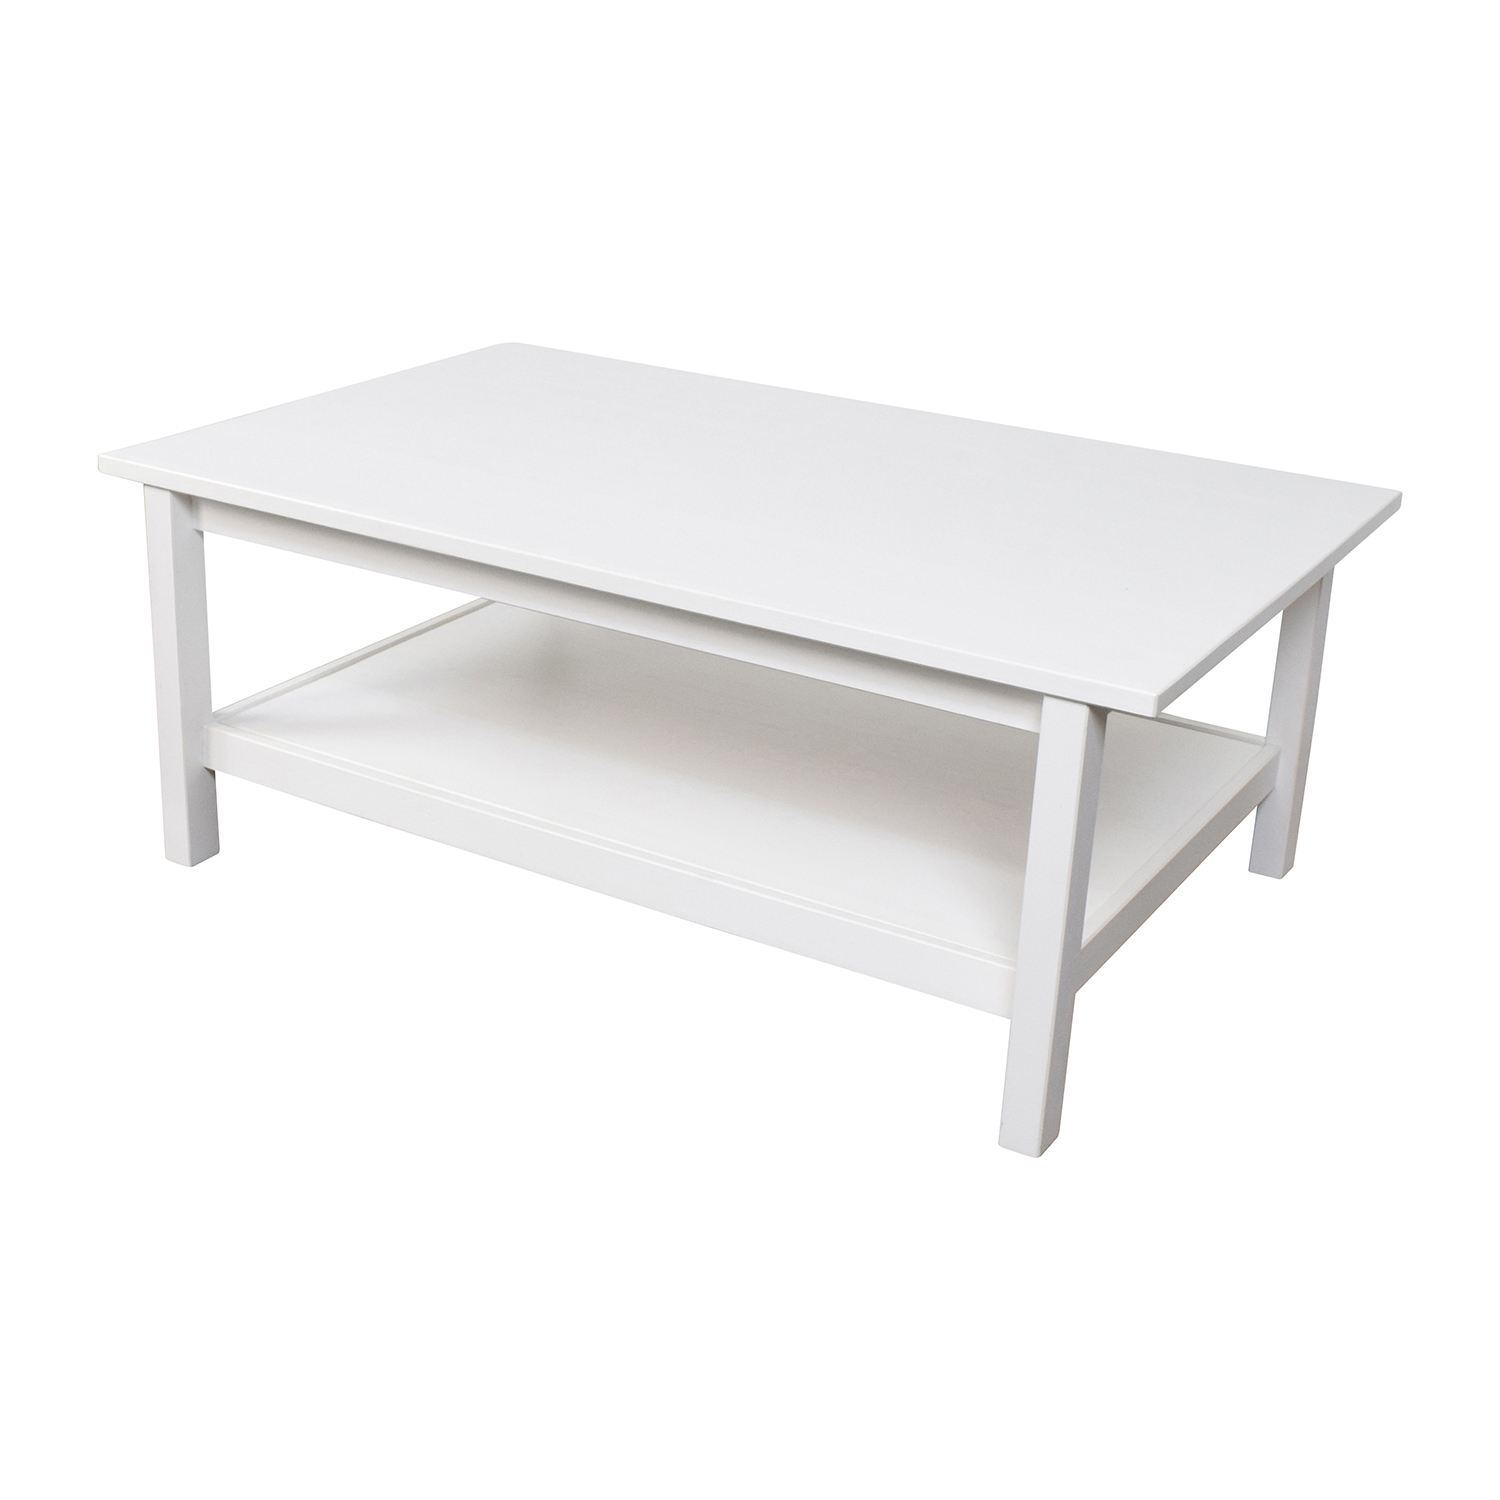 OFF Ikea IKEA Hemnes Coffee Table Tables